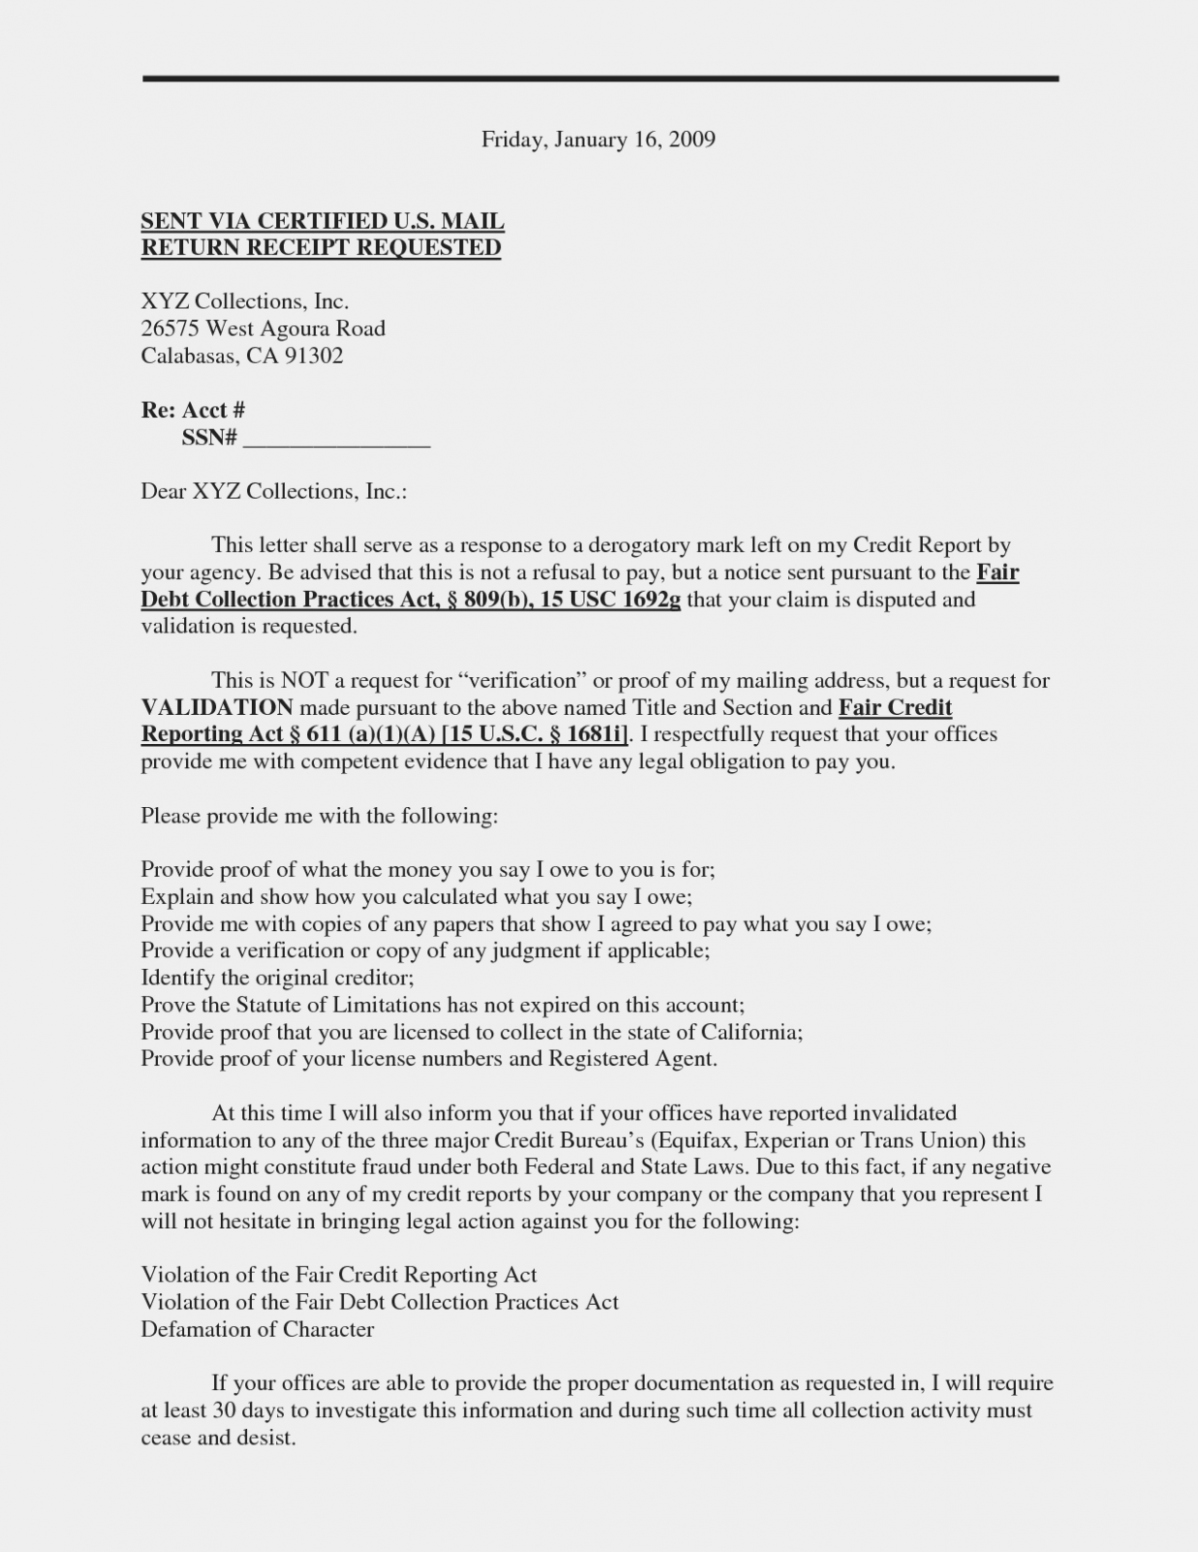 Certified Mail Letter format Awesome How Do I Send A Certified Letter Viewinvite Co